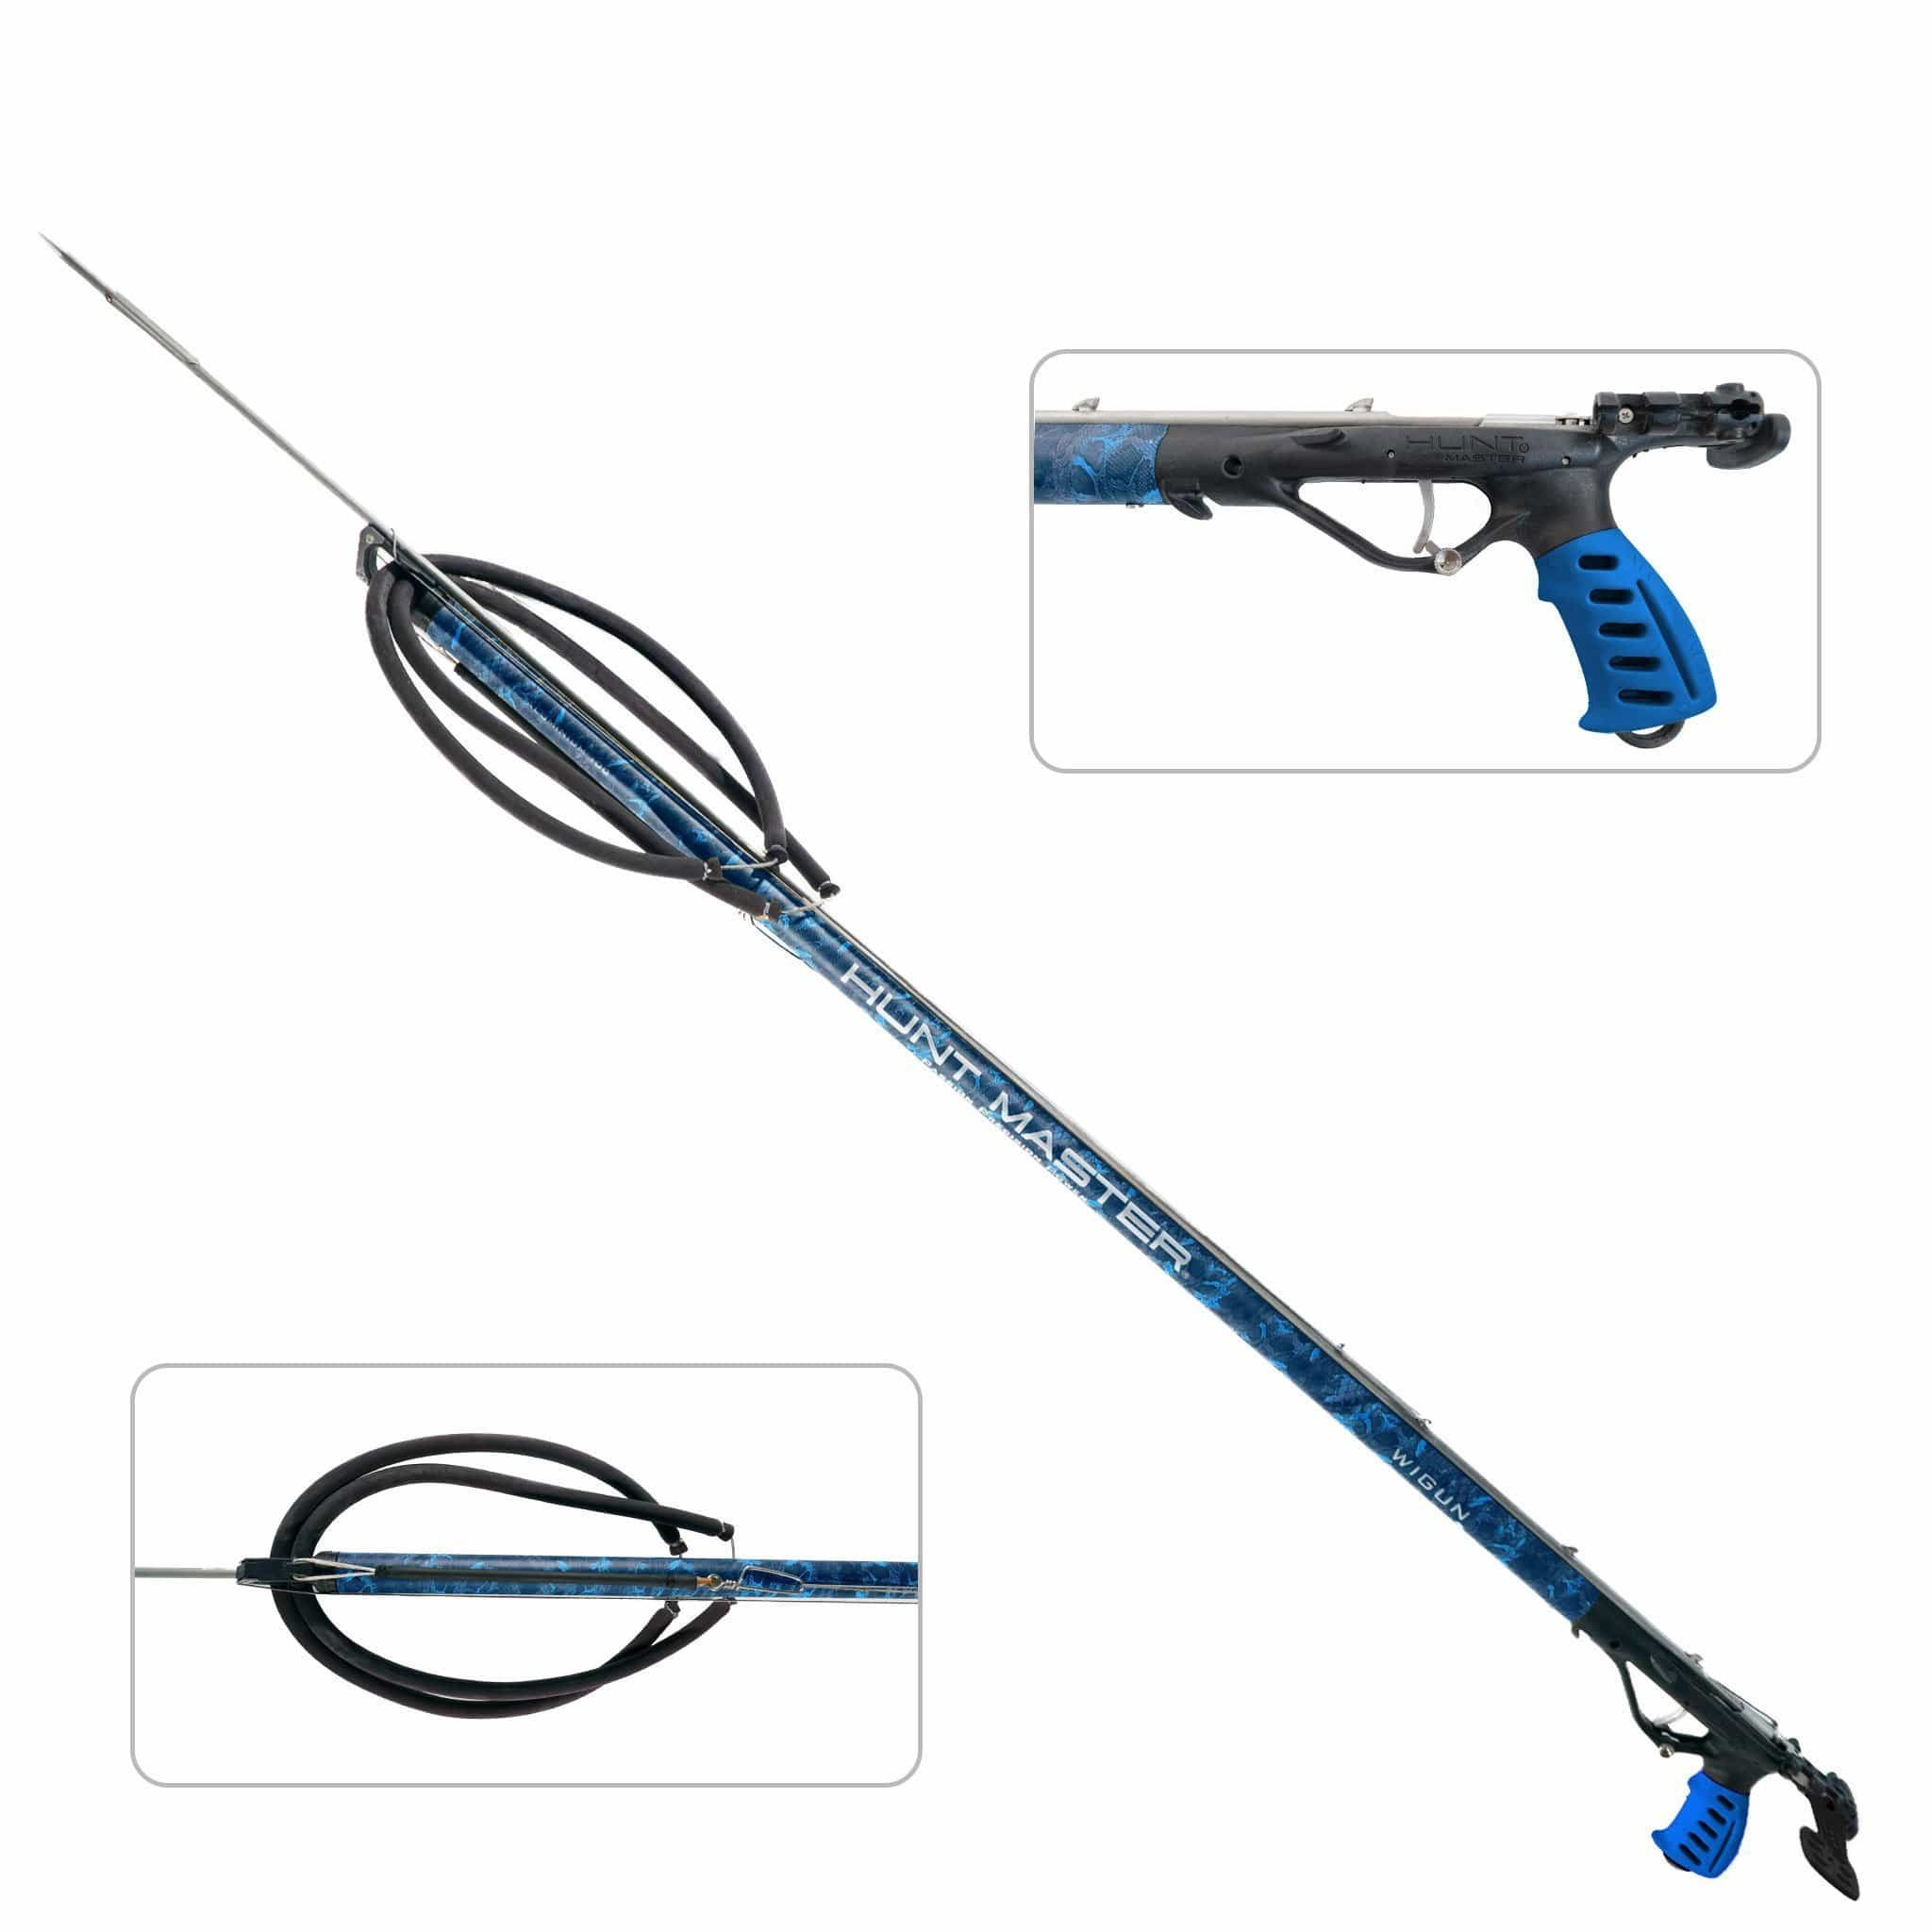 HuntMaster Wigun Aluminium Open Head Speargun - Camo Series (Blue) 75cm - 110cm